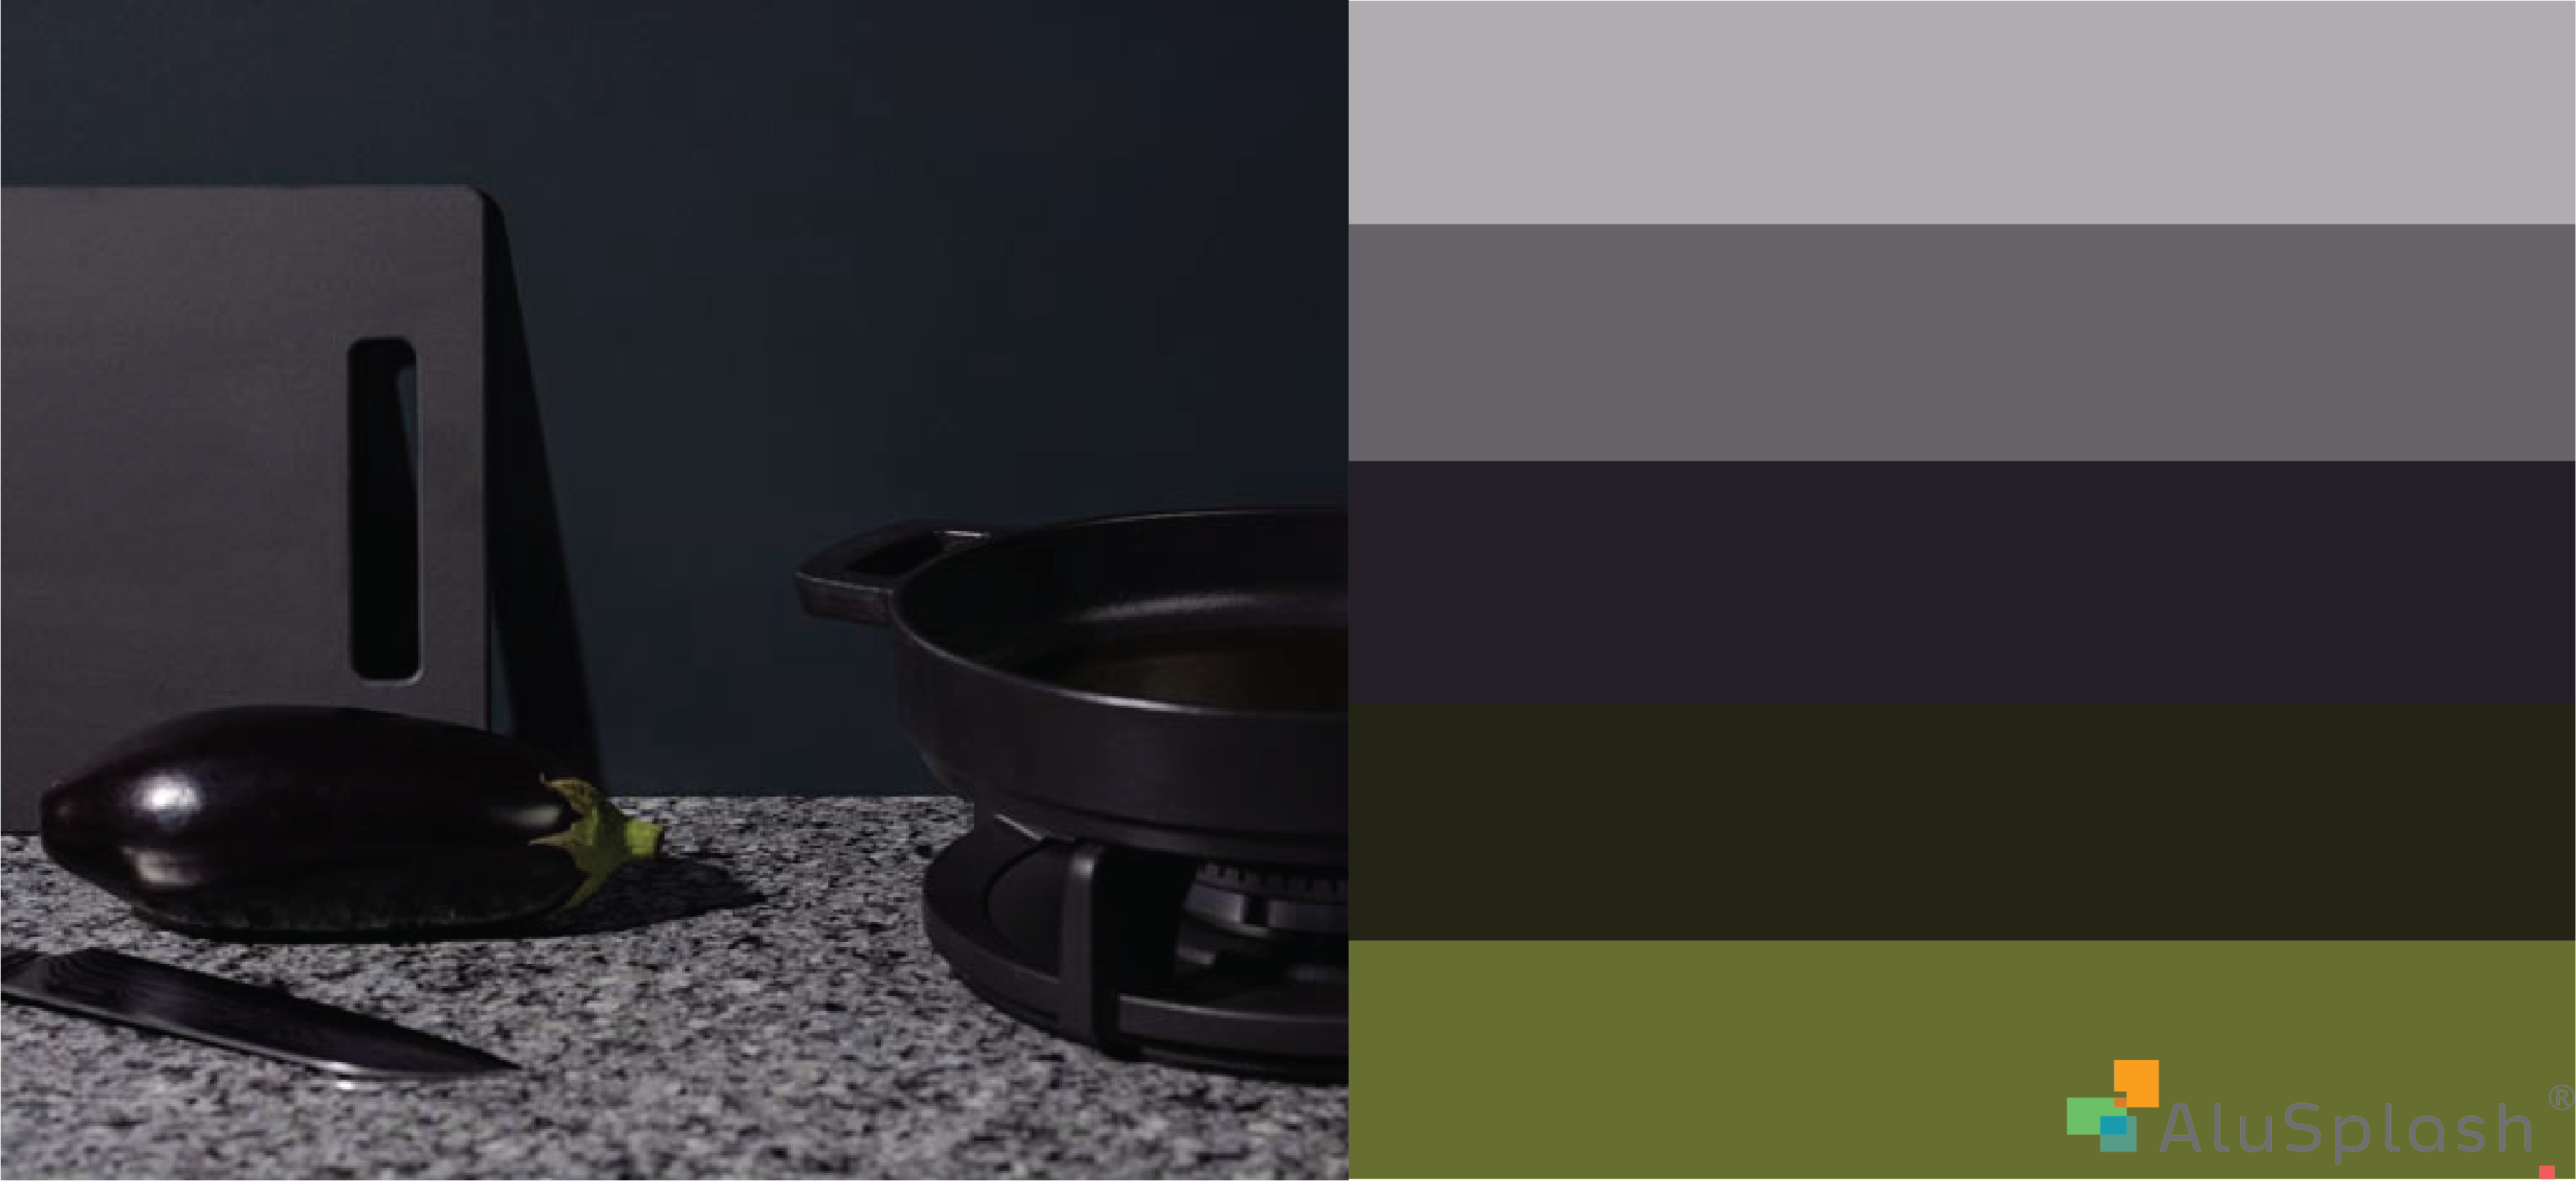 Largeur 50 cm 11 Sizes AluCouleur Composite Splashback Brushed Stainless Steel Look Height 35 cm x